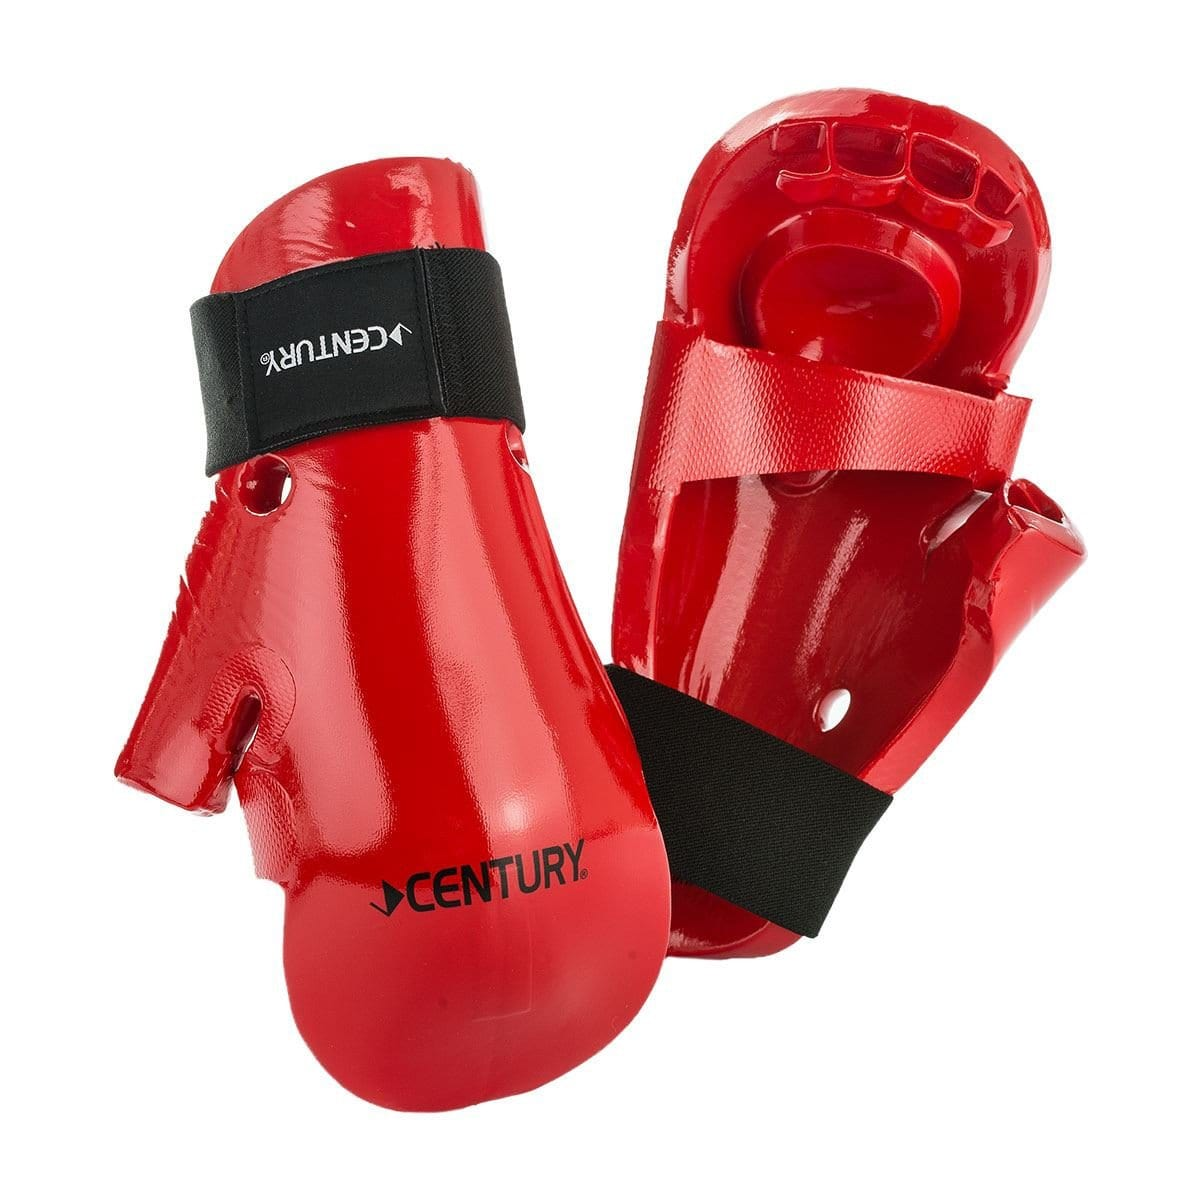 Century Sparring Gloves Any Size Karate Taekwondo Martial Arts c1153